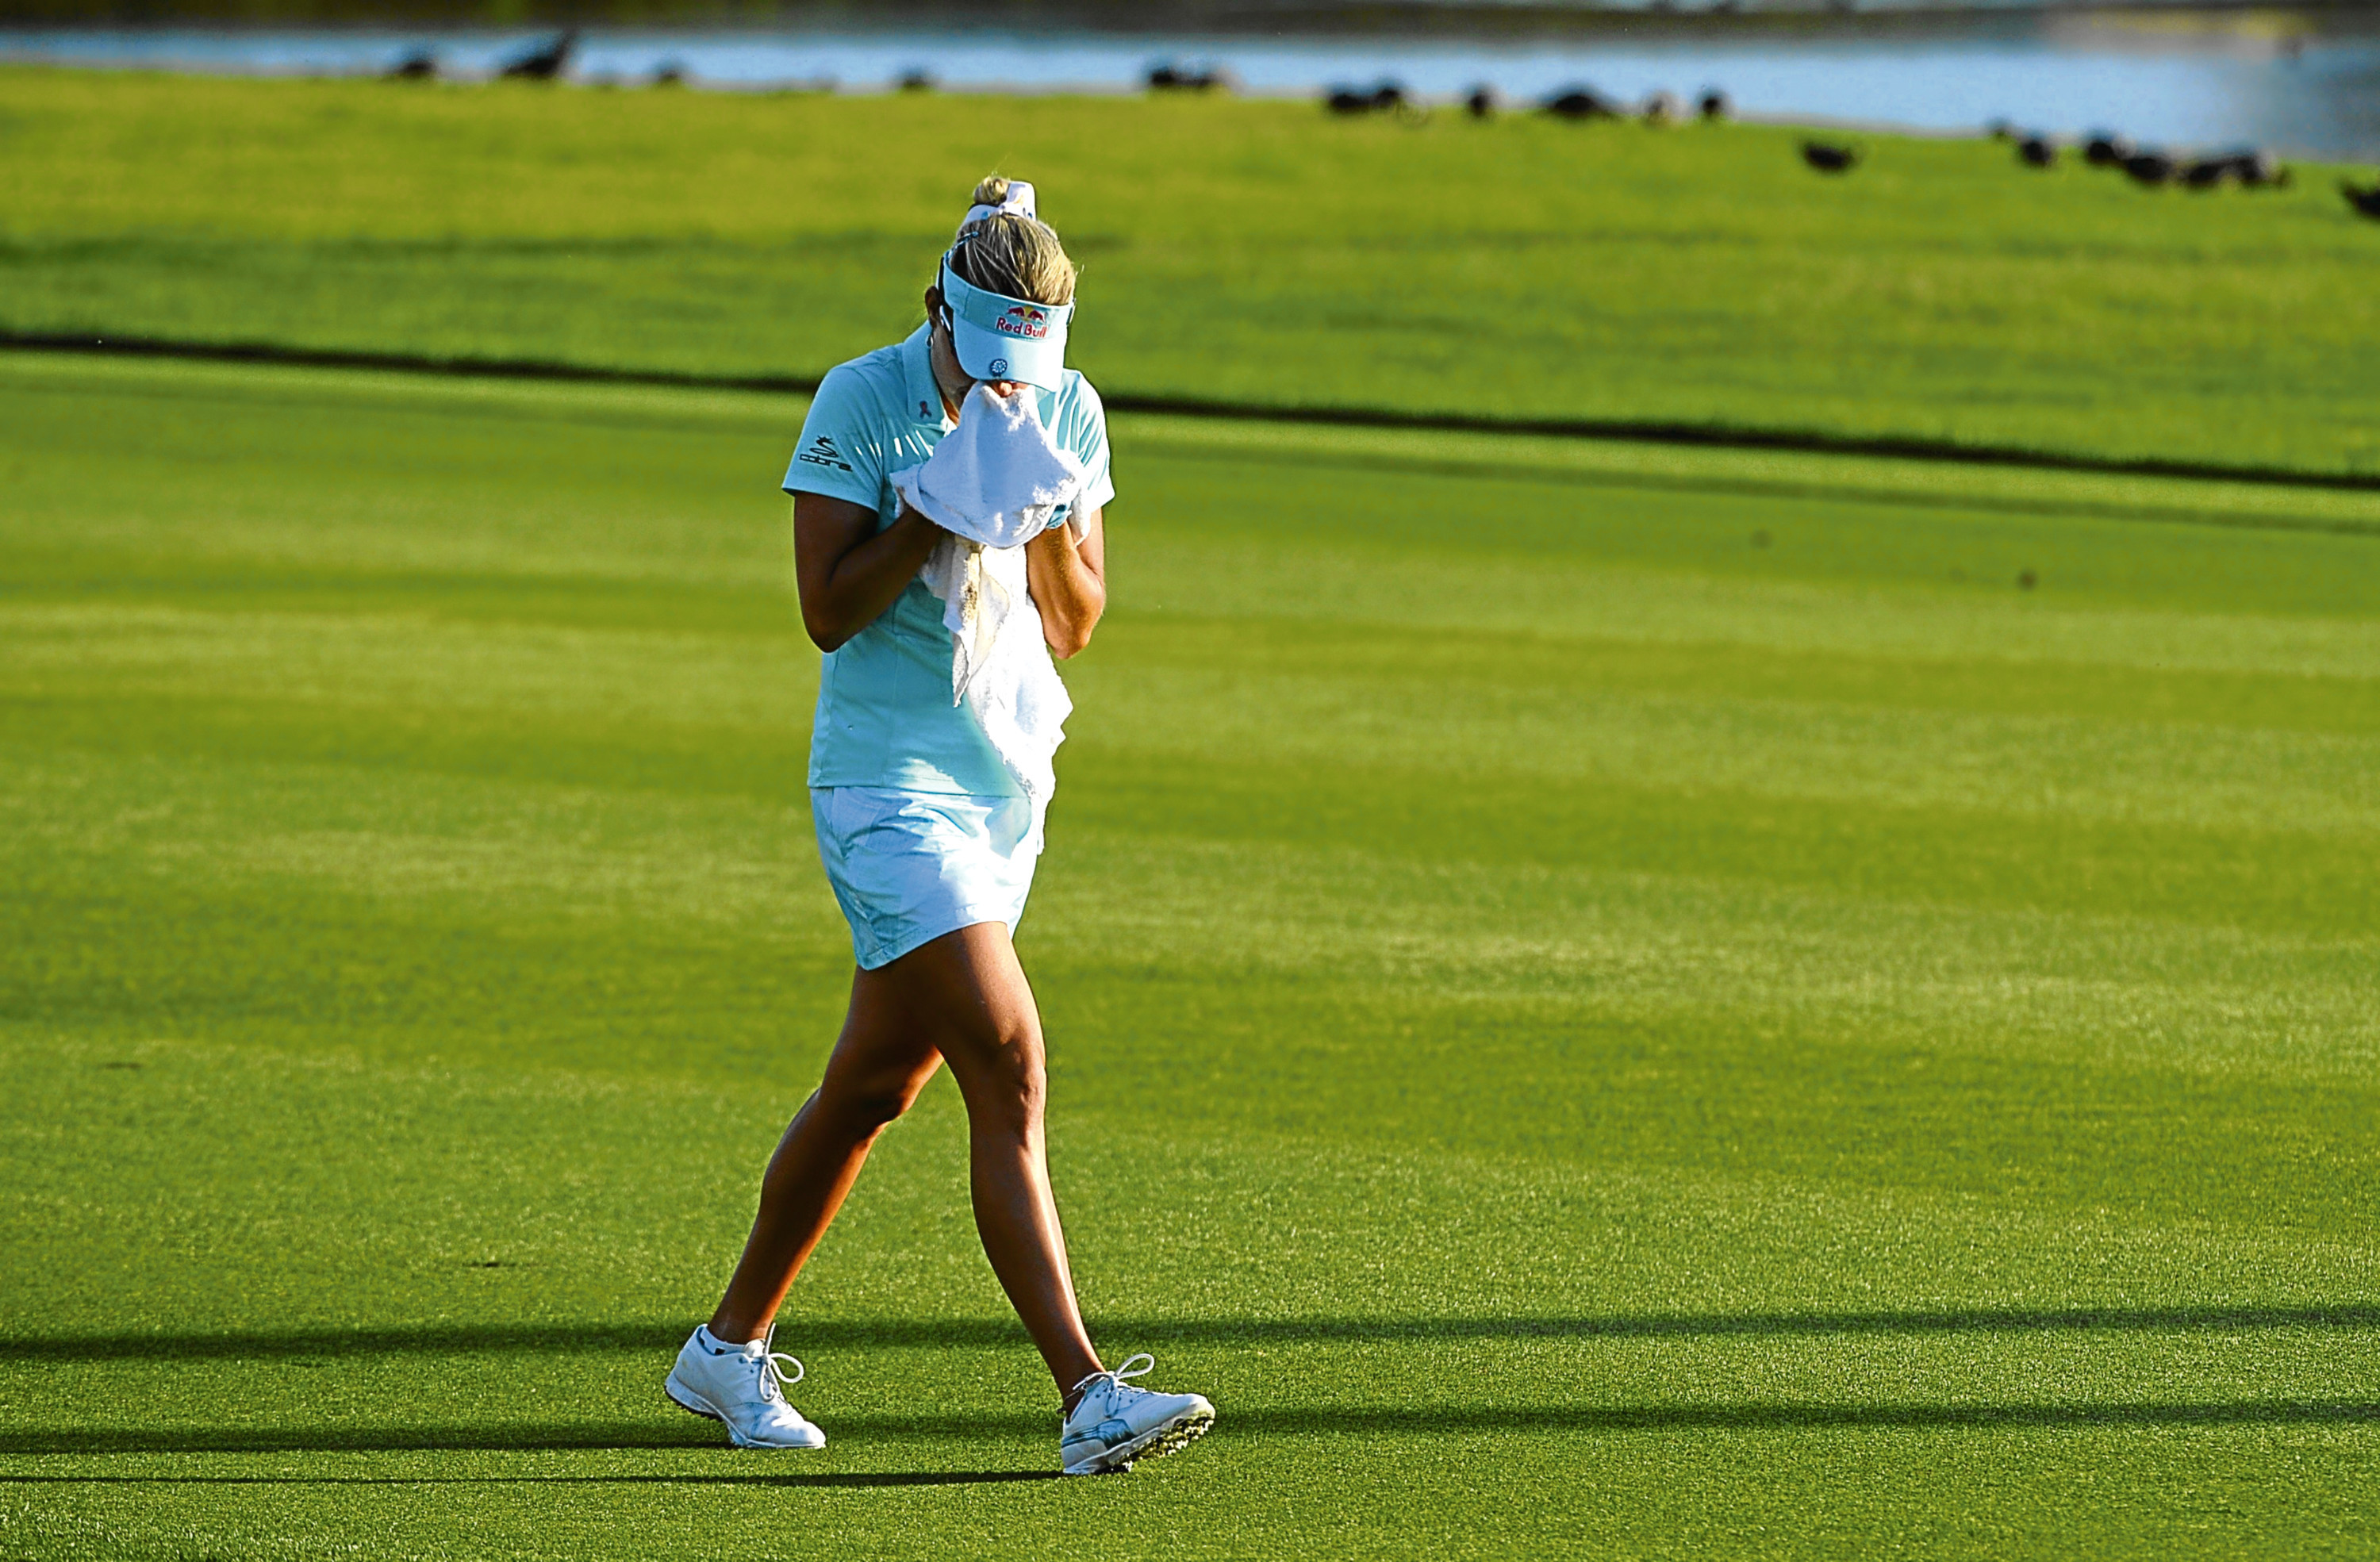 Lexi Thompson's emotional reaction at the ANA Inspiration in April after she was retrospectively penalised for a ball-marking error.